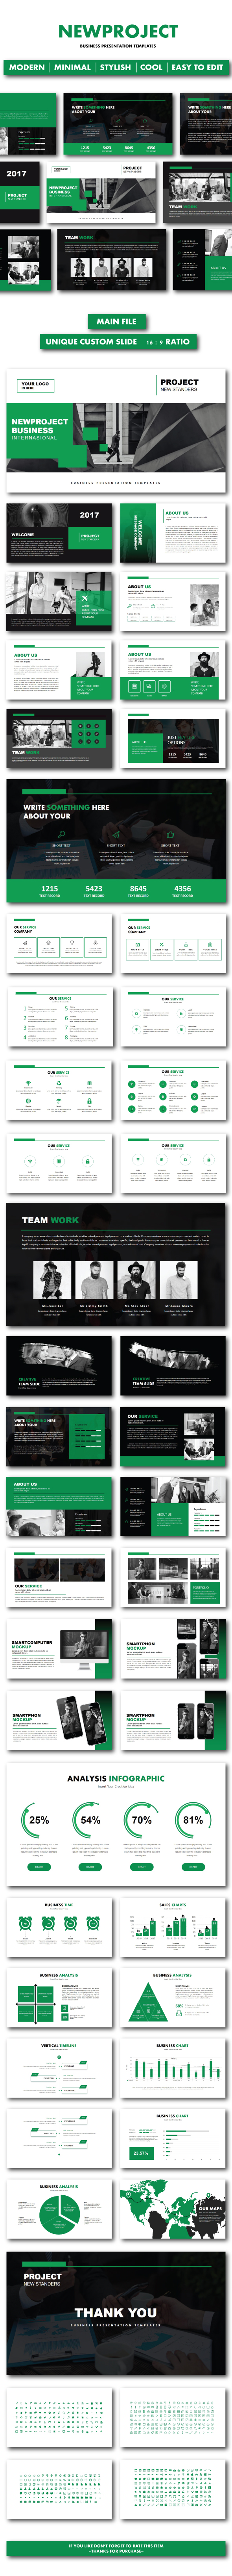 GraphicRiver Newproject Google Slide Templates 21192524